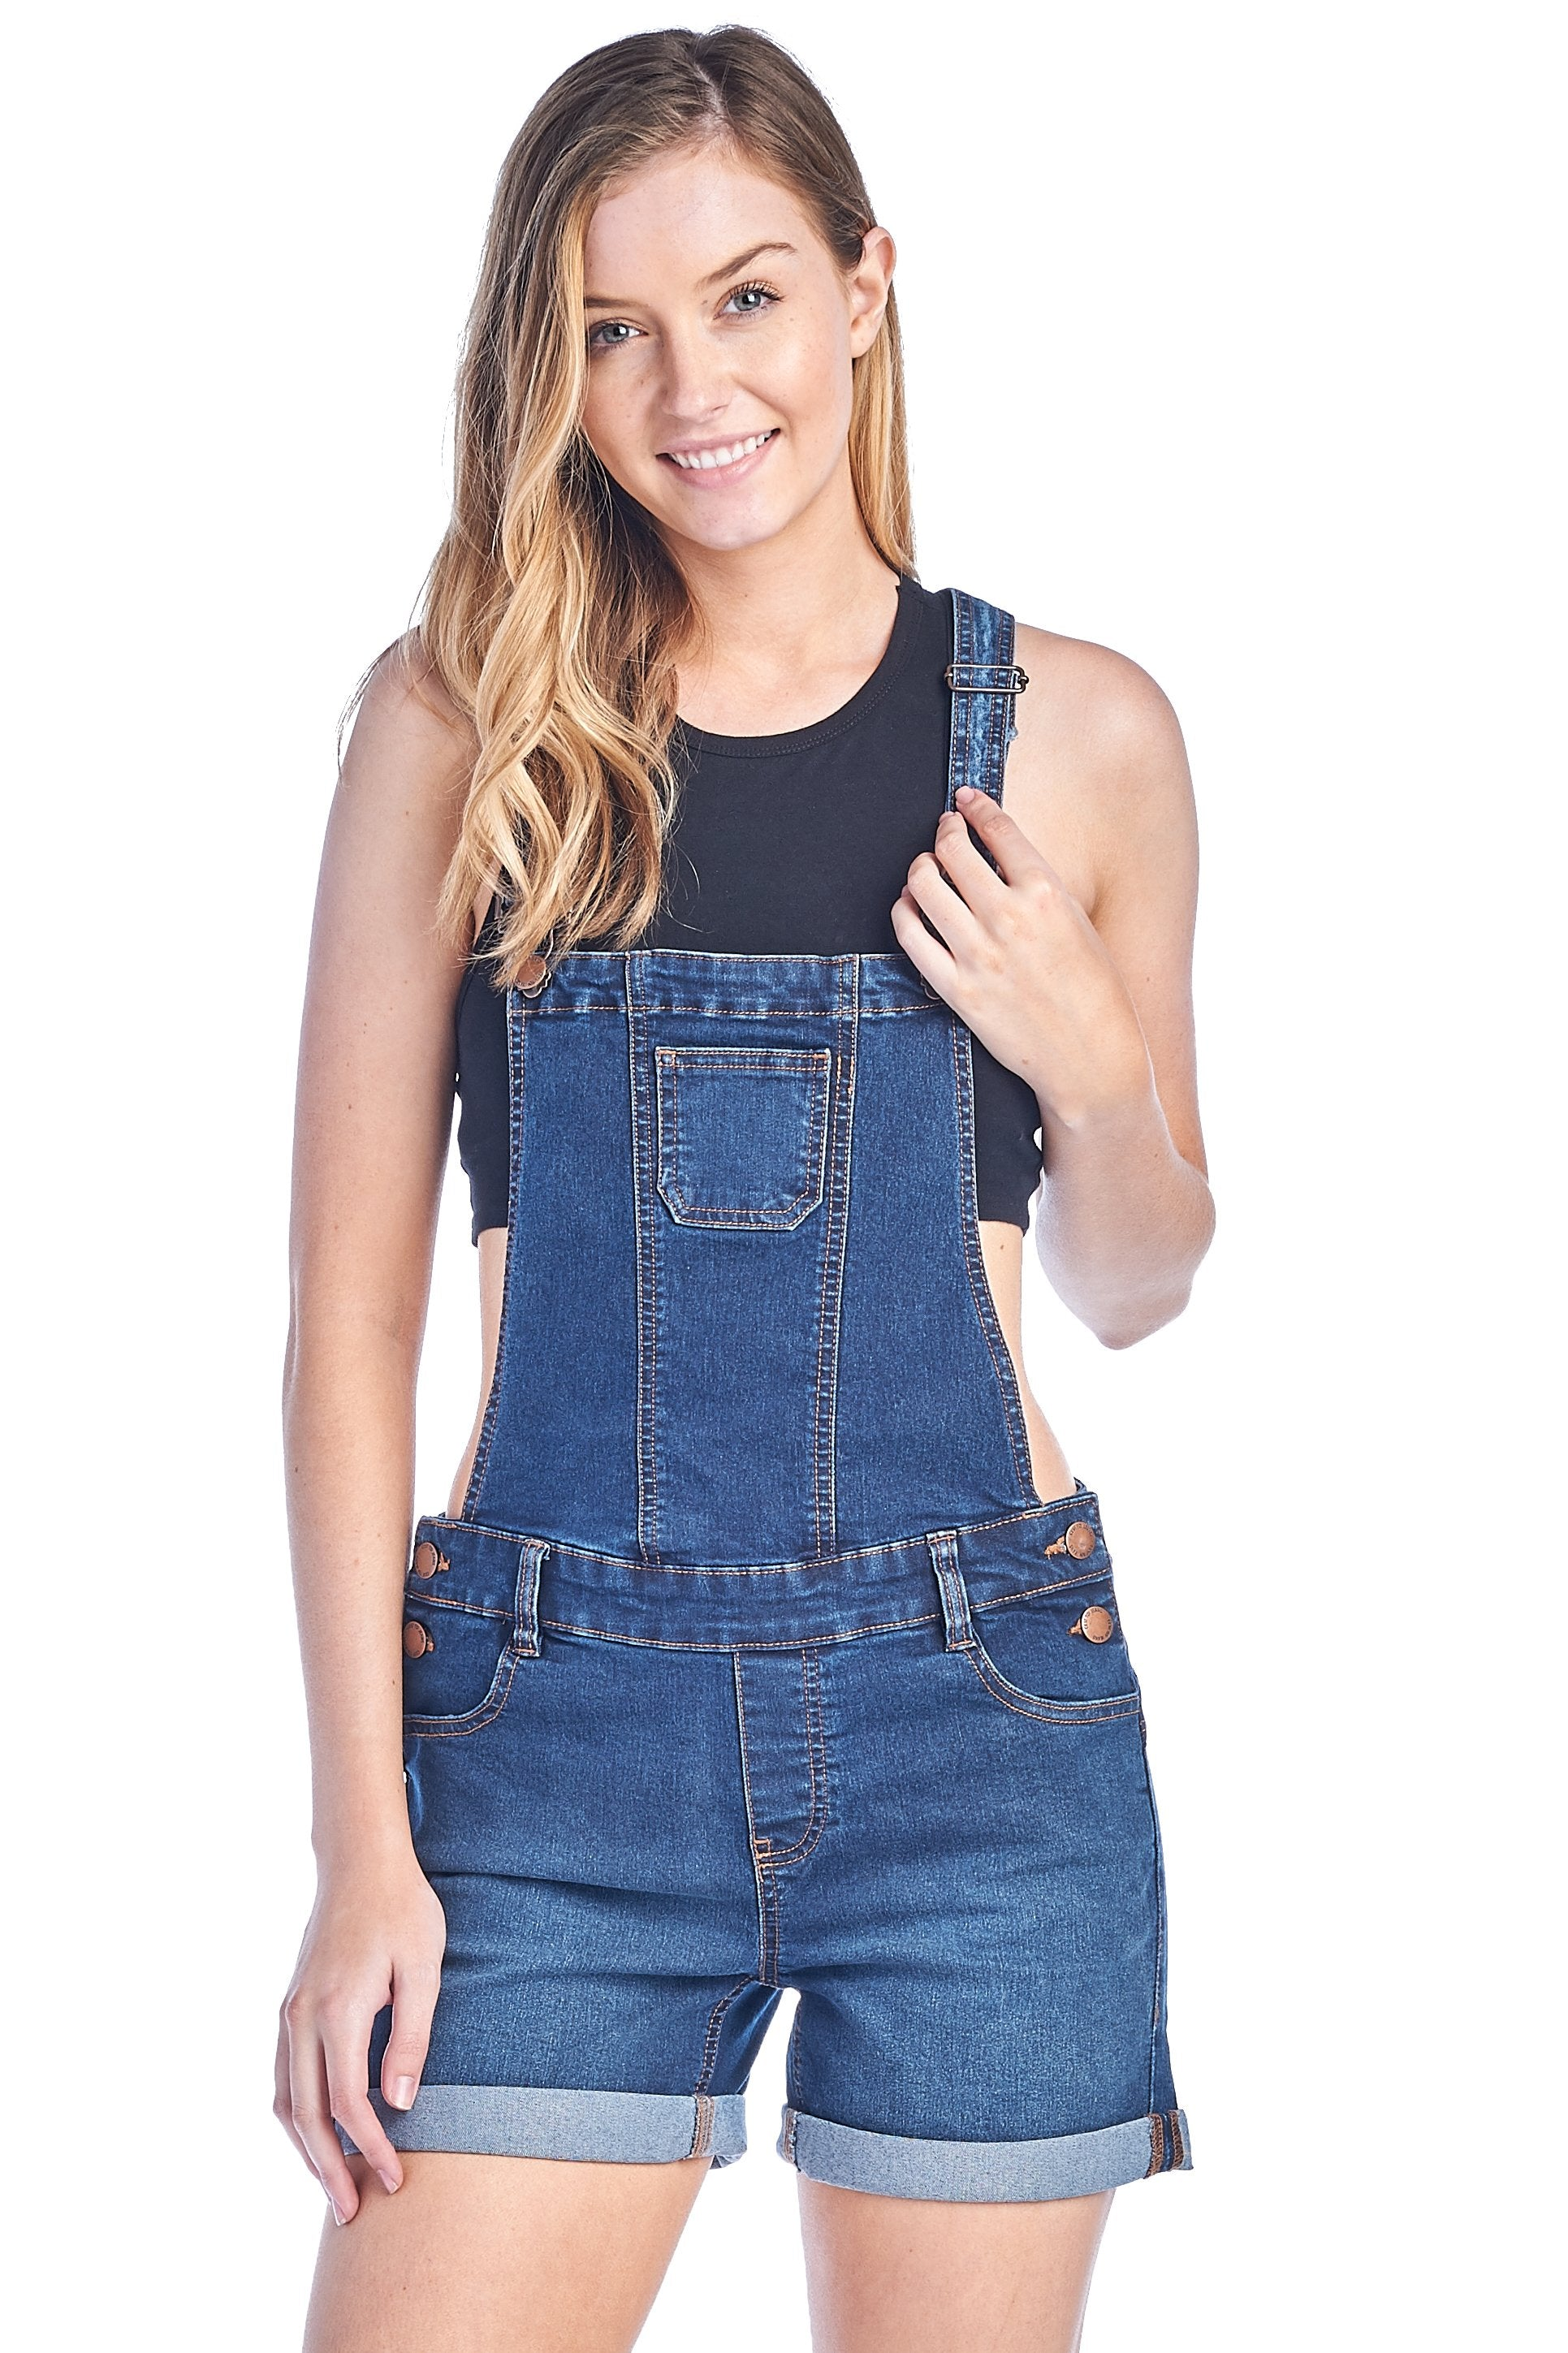 Women's Casual Cotton Stretch Denim Jean Push Up Shortall Shorts Overalls